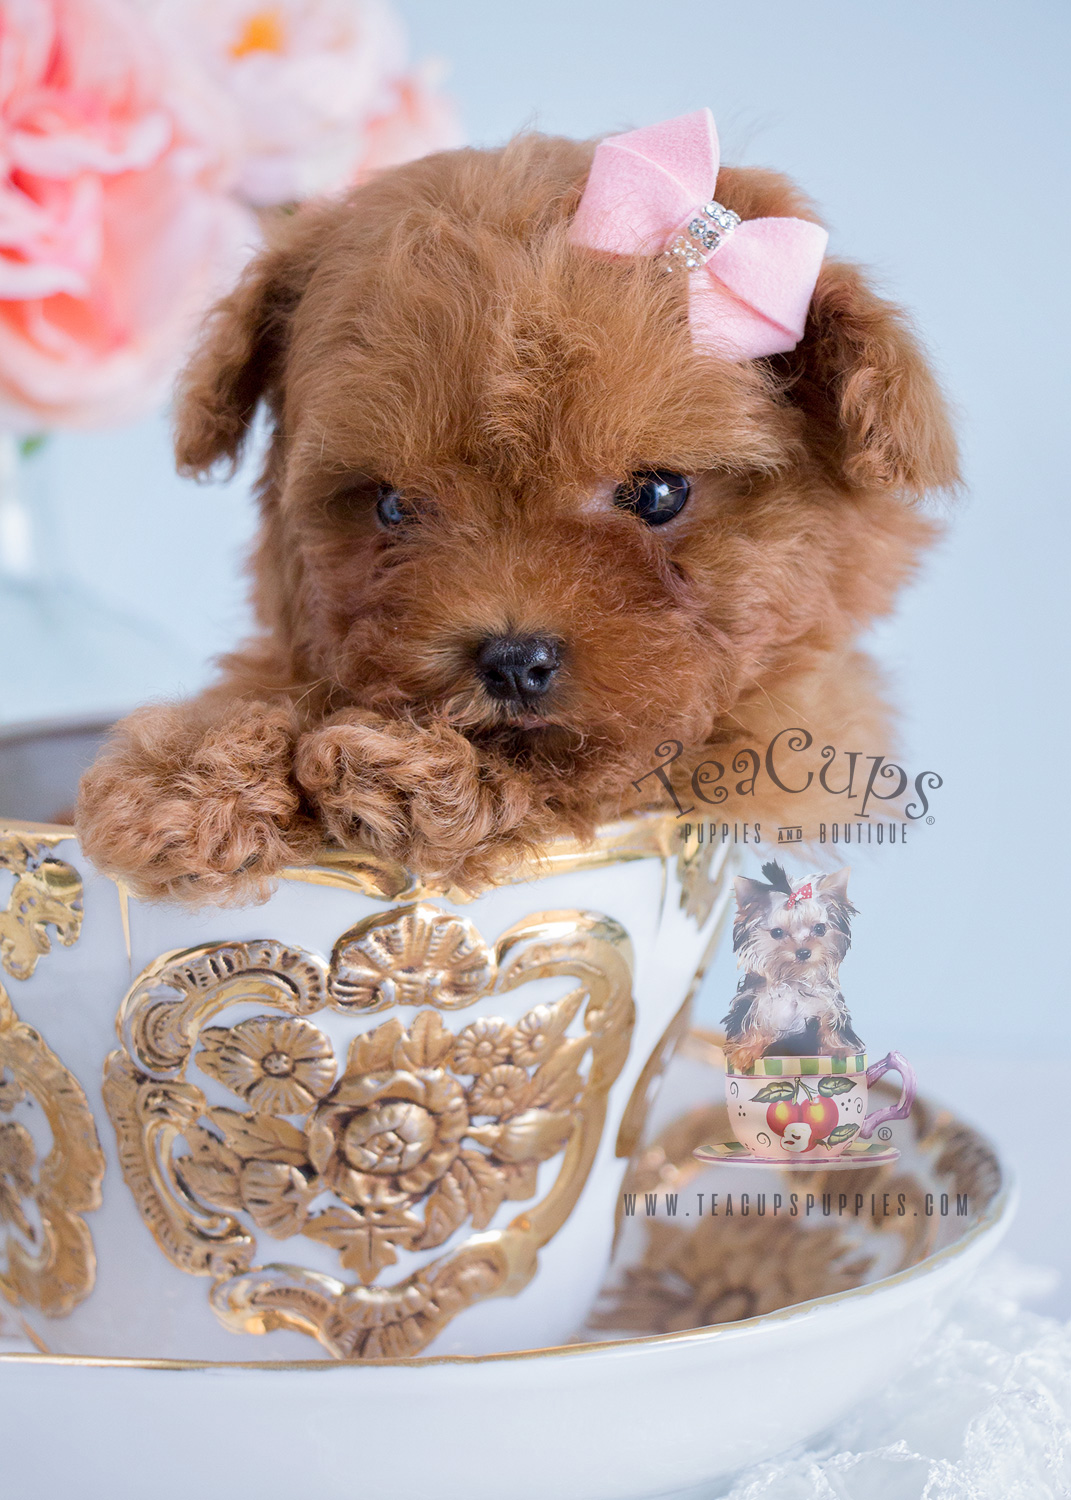 Red Female Poodle Puppy For Sale